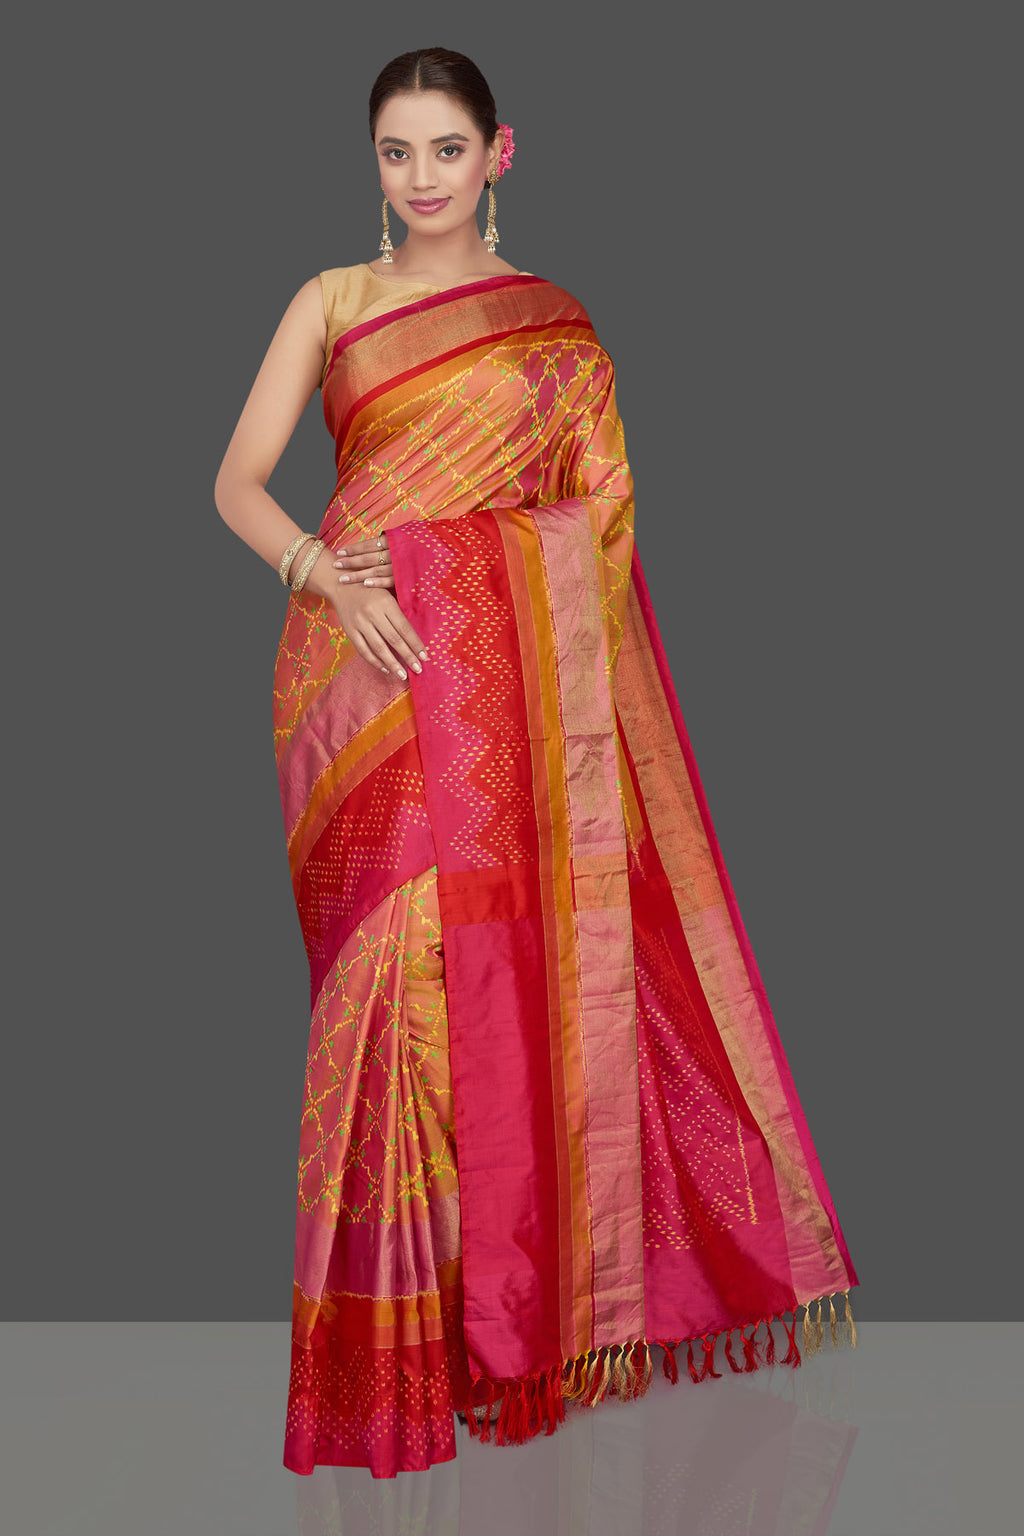 Buy beautiful dusty pink ikkat silk sari online in USA with pink and red border. Get ready for festive occasions in exclusive silk sarees, ikkat saris, Kanchipuram silk sarees, designer sarees from Pure Elegance Indian sarees store in USA.-full view